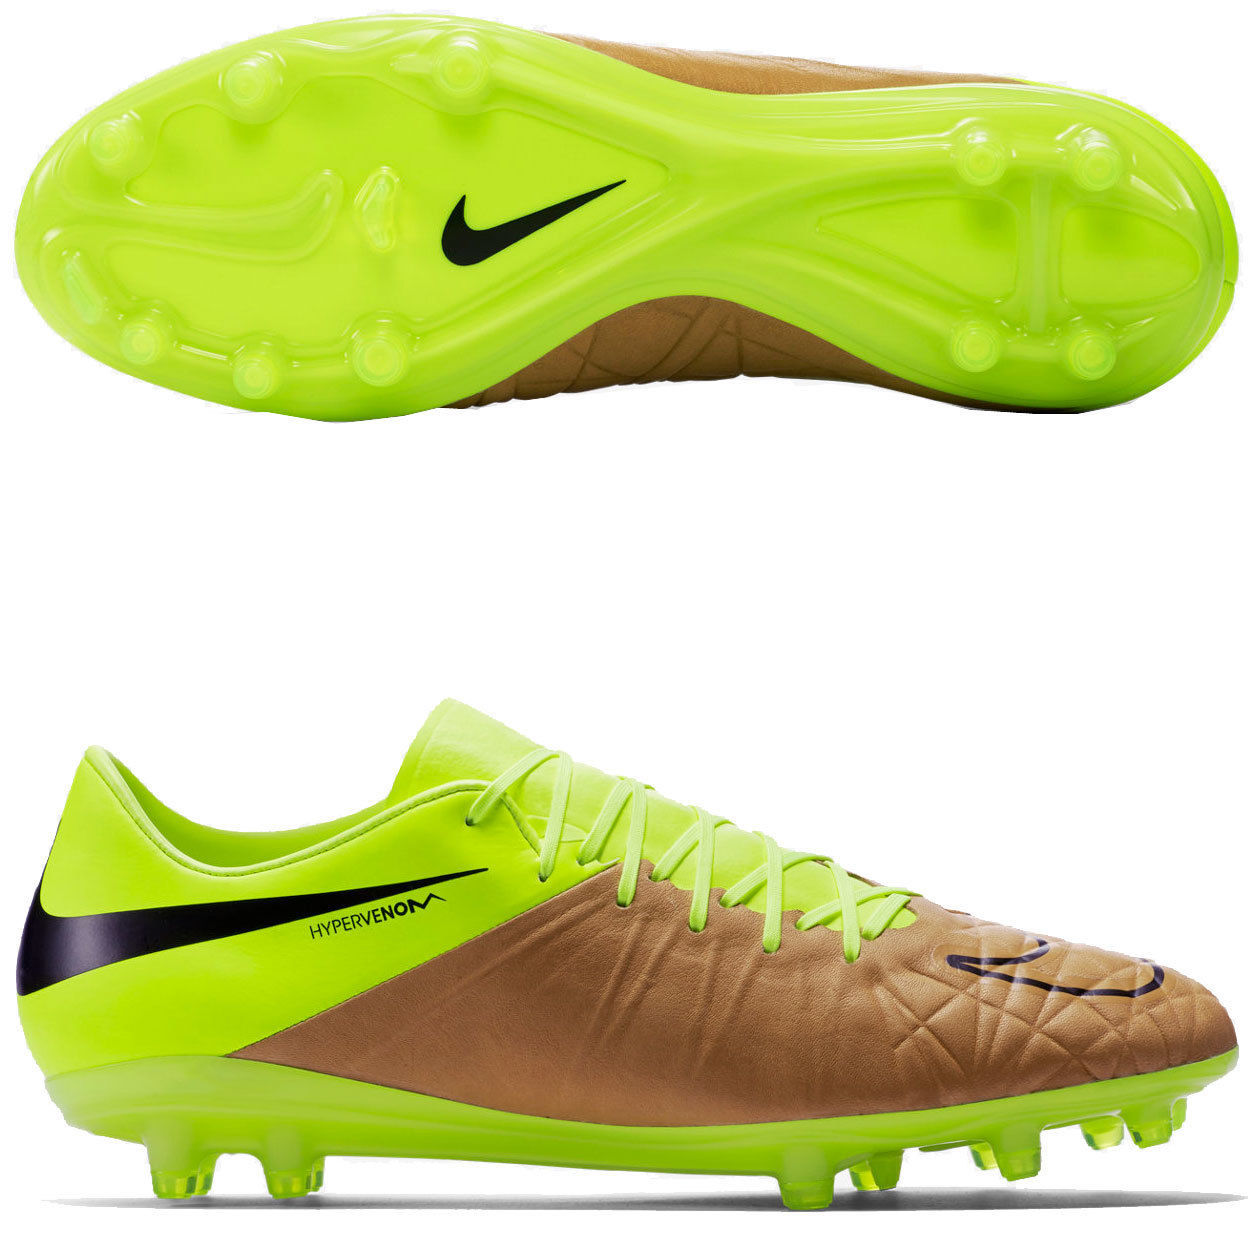 abd133acc6d Nike Hypervenom Phinish Fg Soccer Cleats and 50 similar items